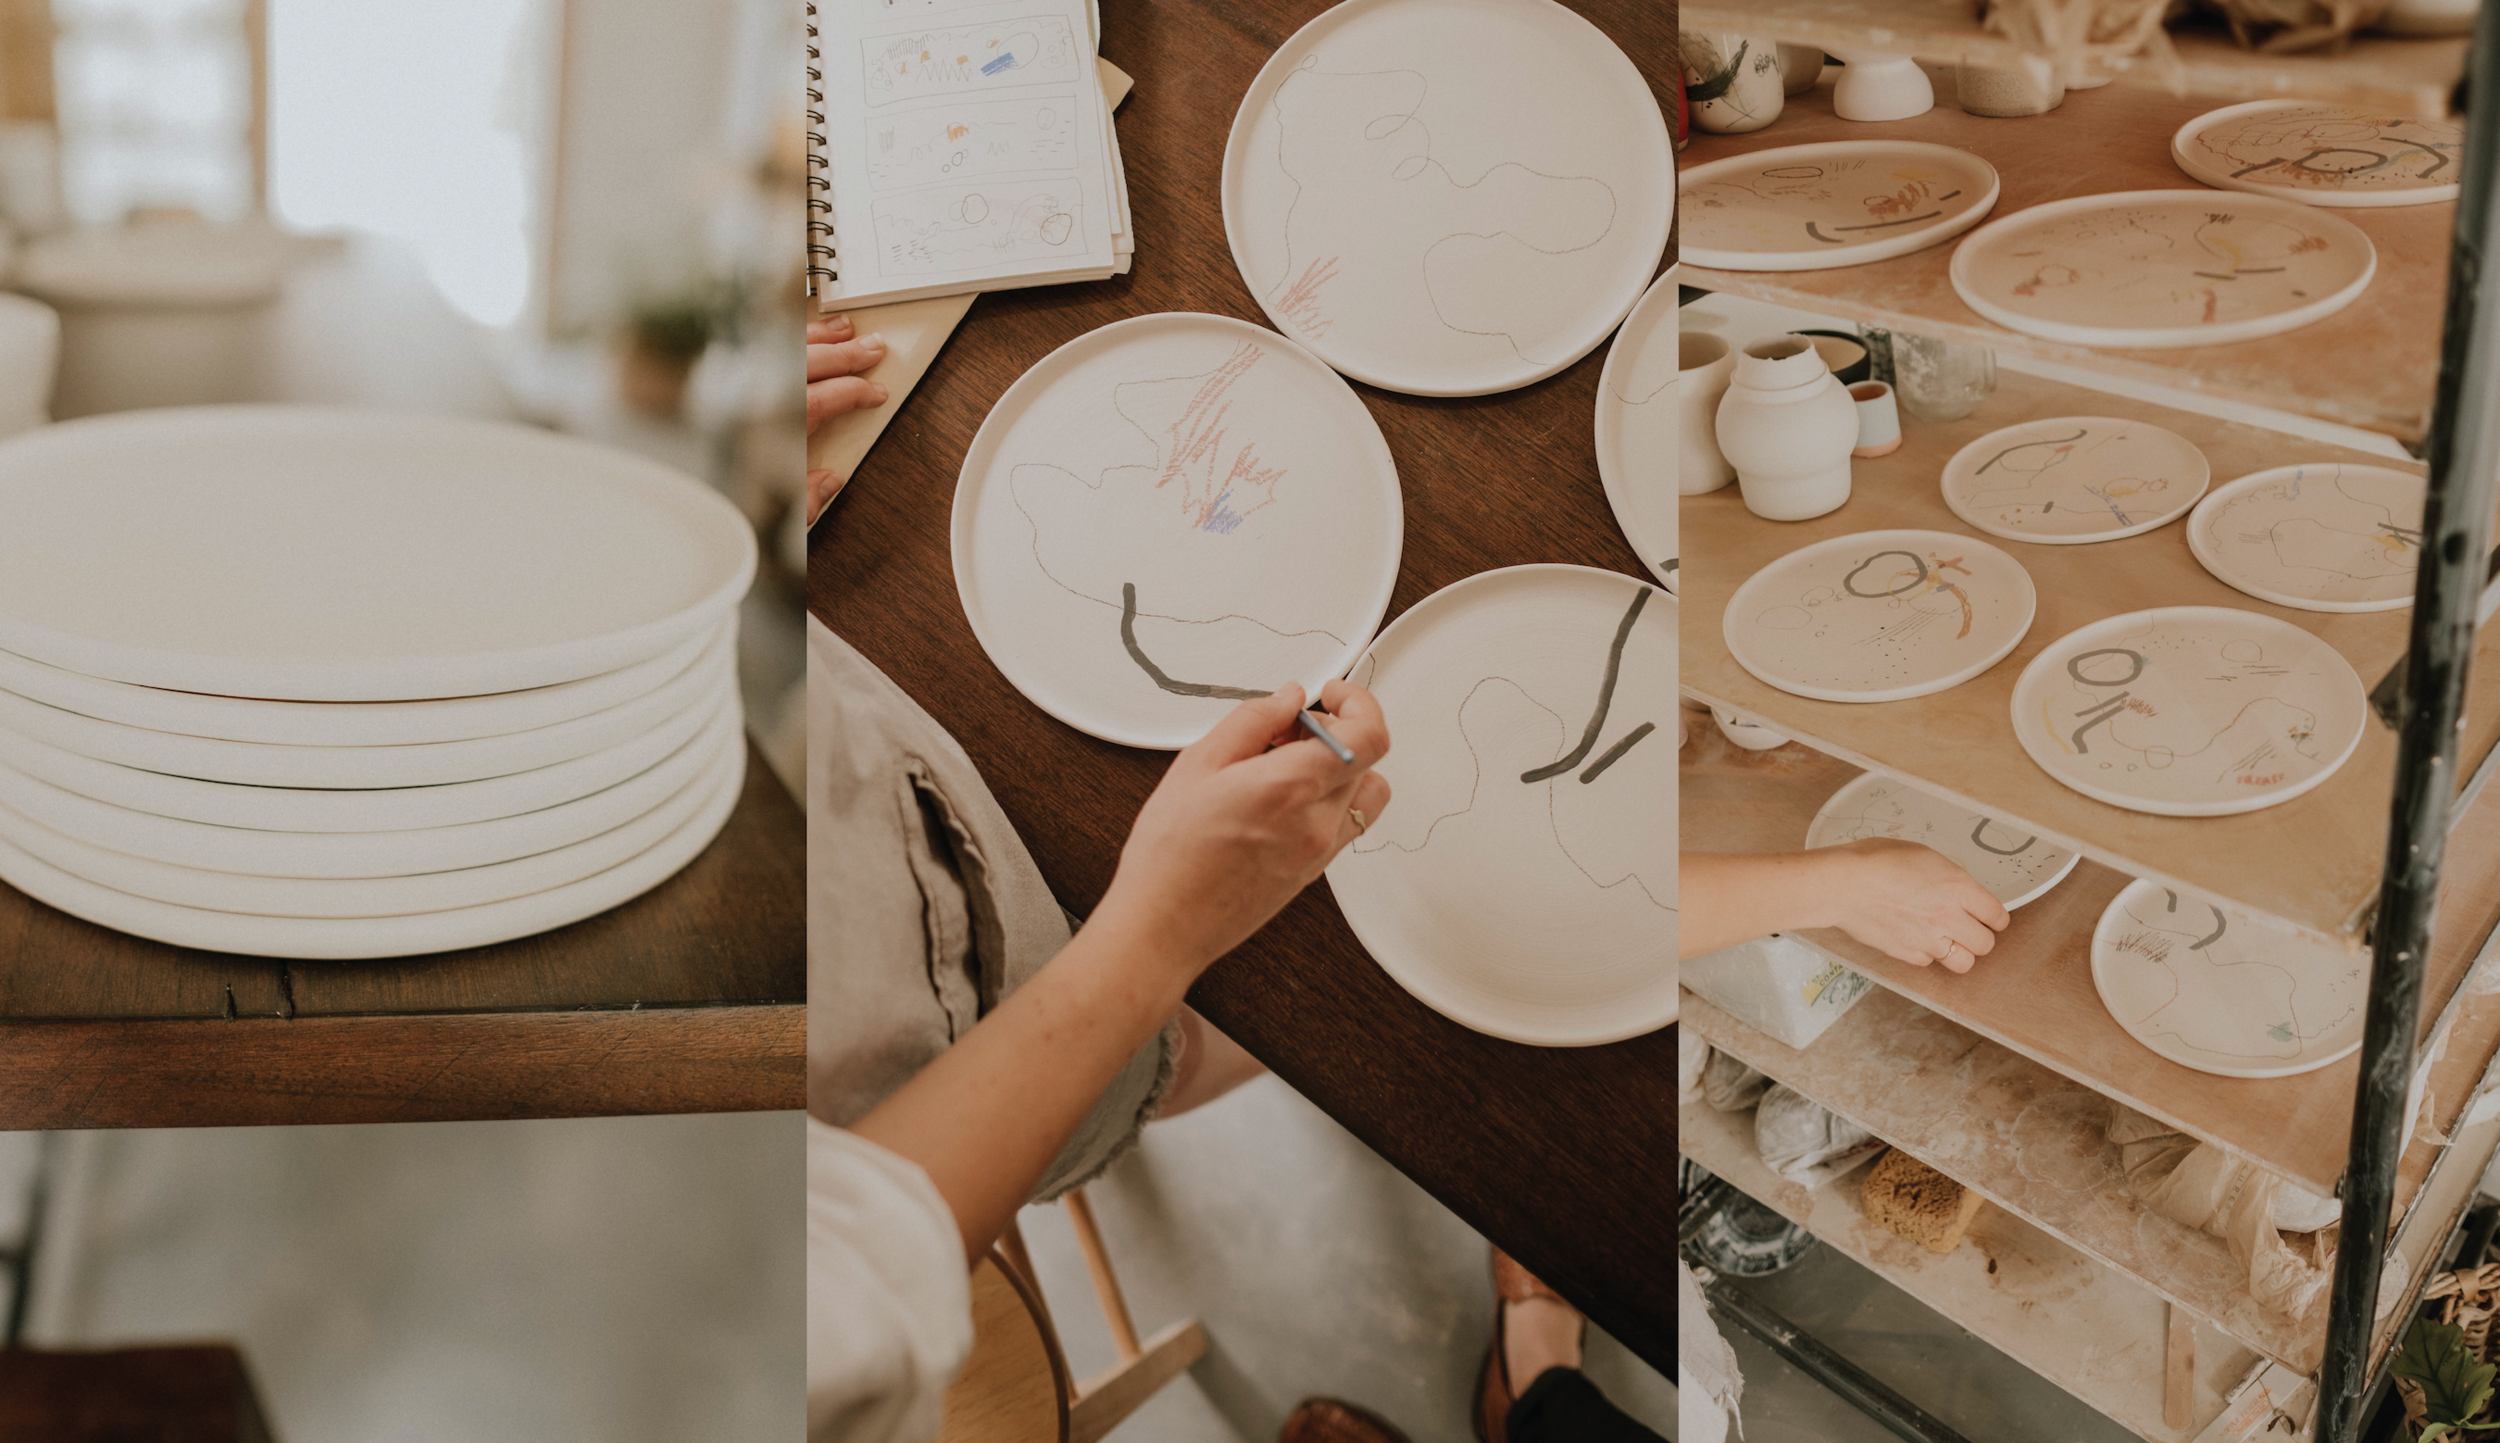 I'm a big fan of the way all the plates came out - those sweet circular canvases